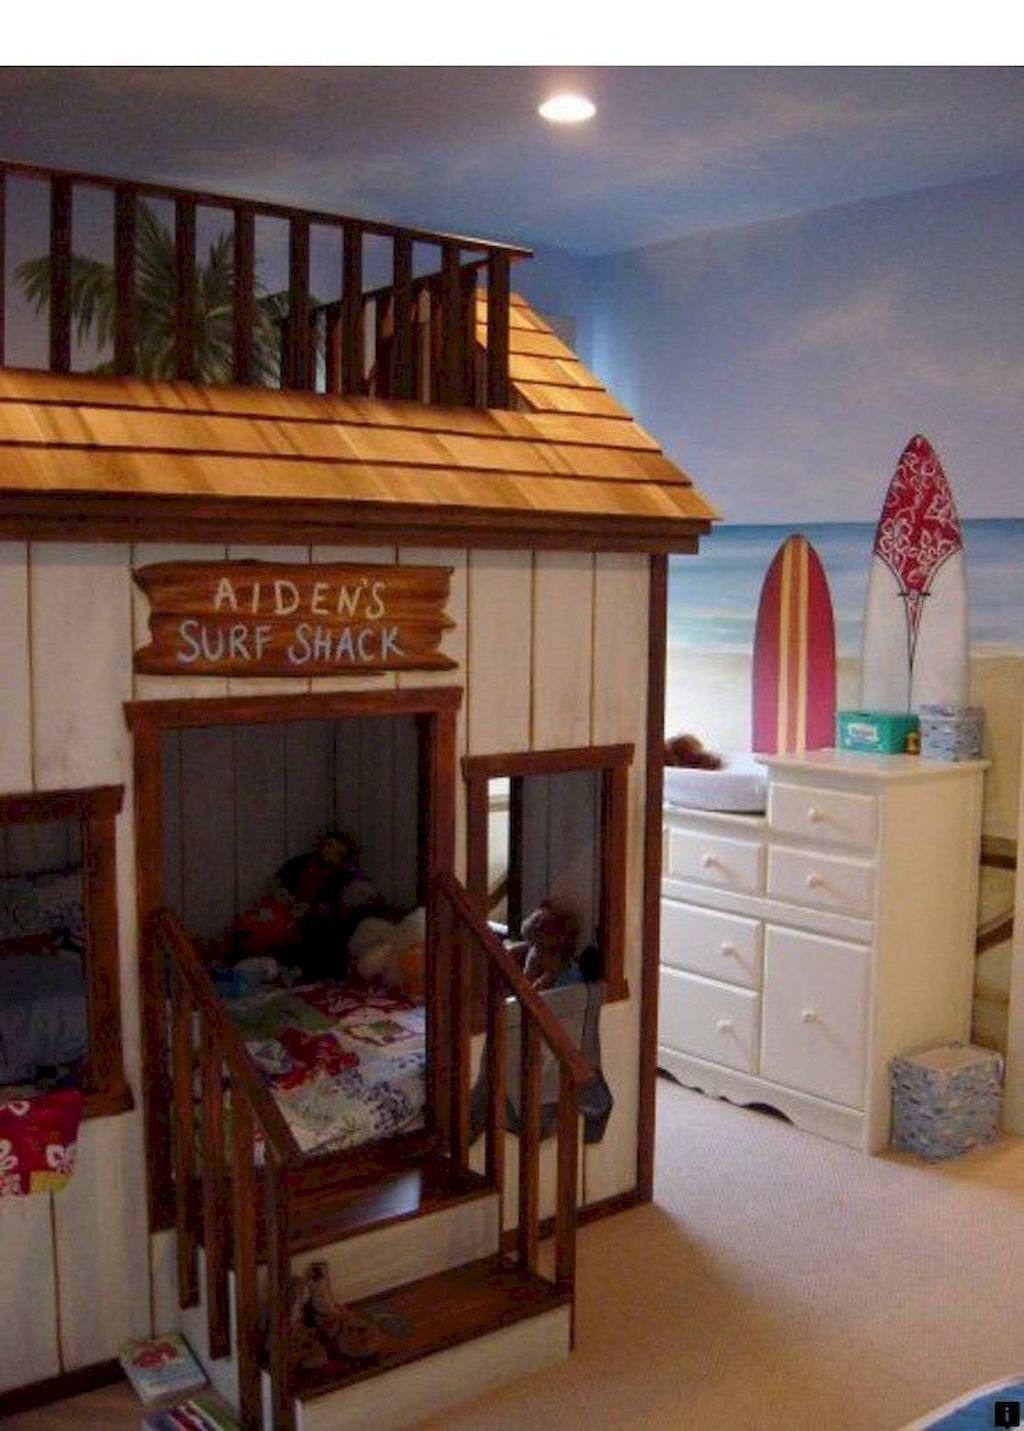 prodigious children bed room adorning concepts https on wonderful ideas of bunk beds for your kids bedroom id=44898